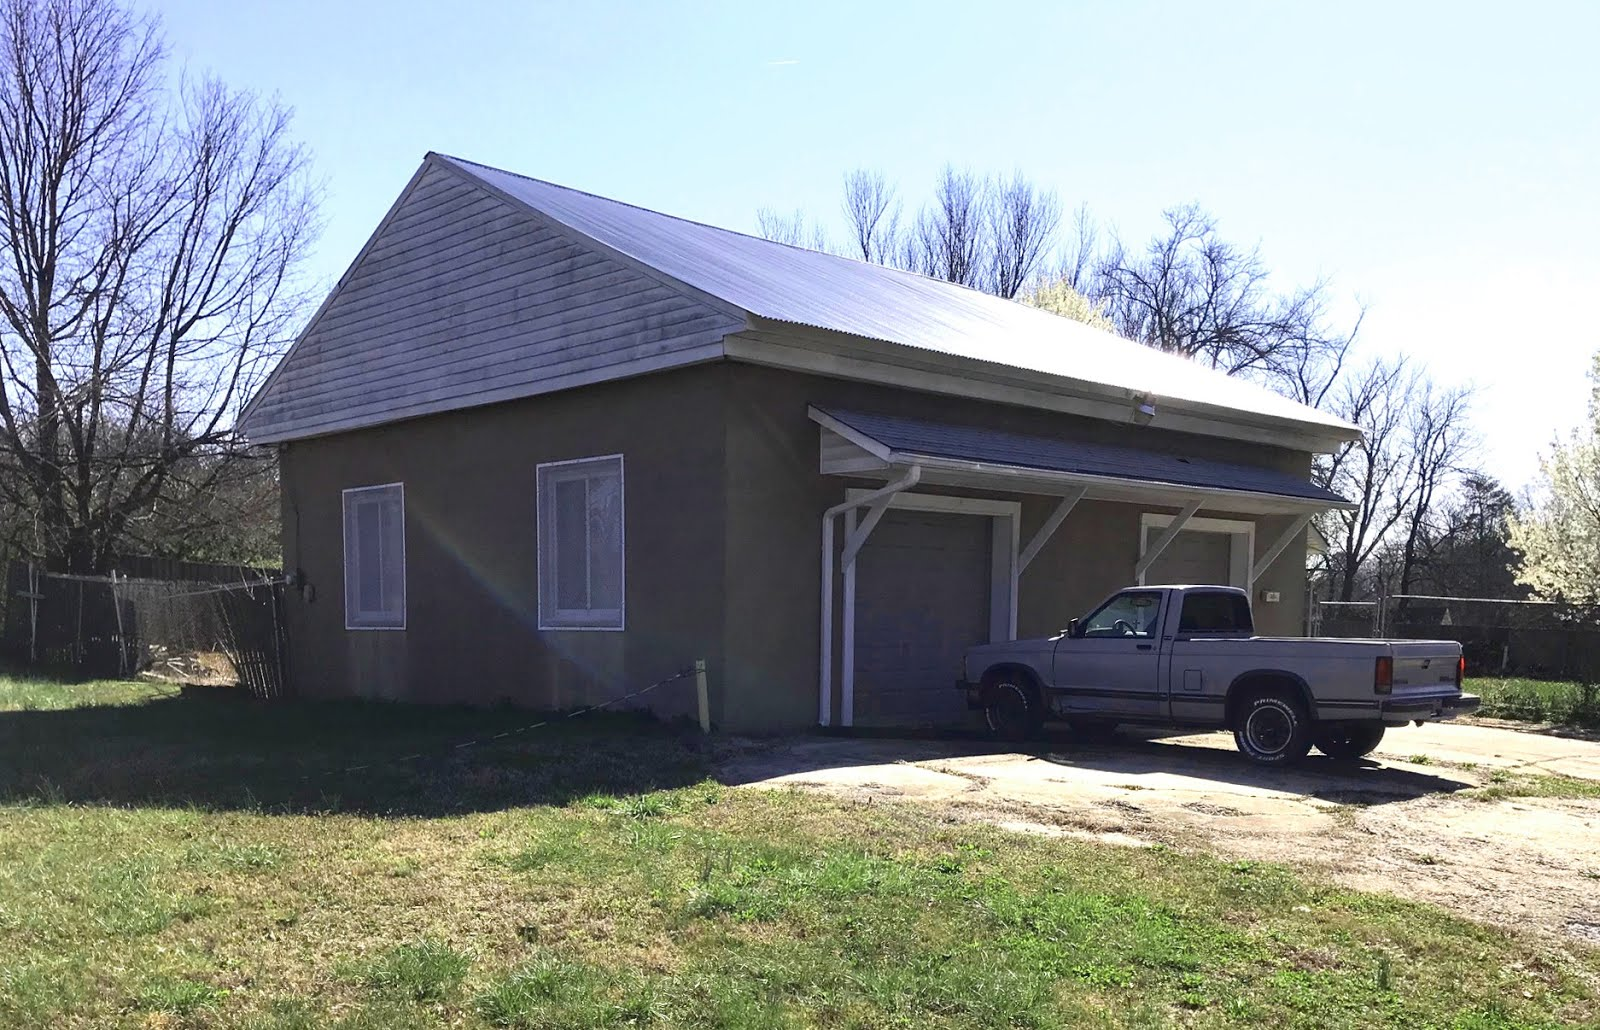 212 N. Railroad Street, East Spencer NC 28039 ~ $34,900